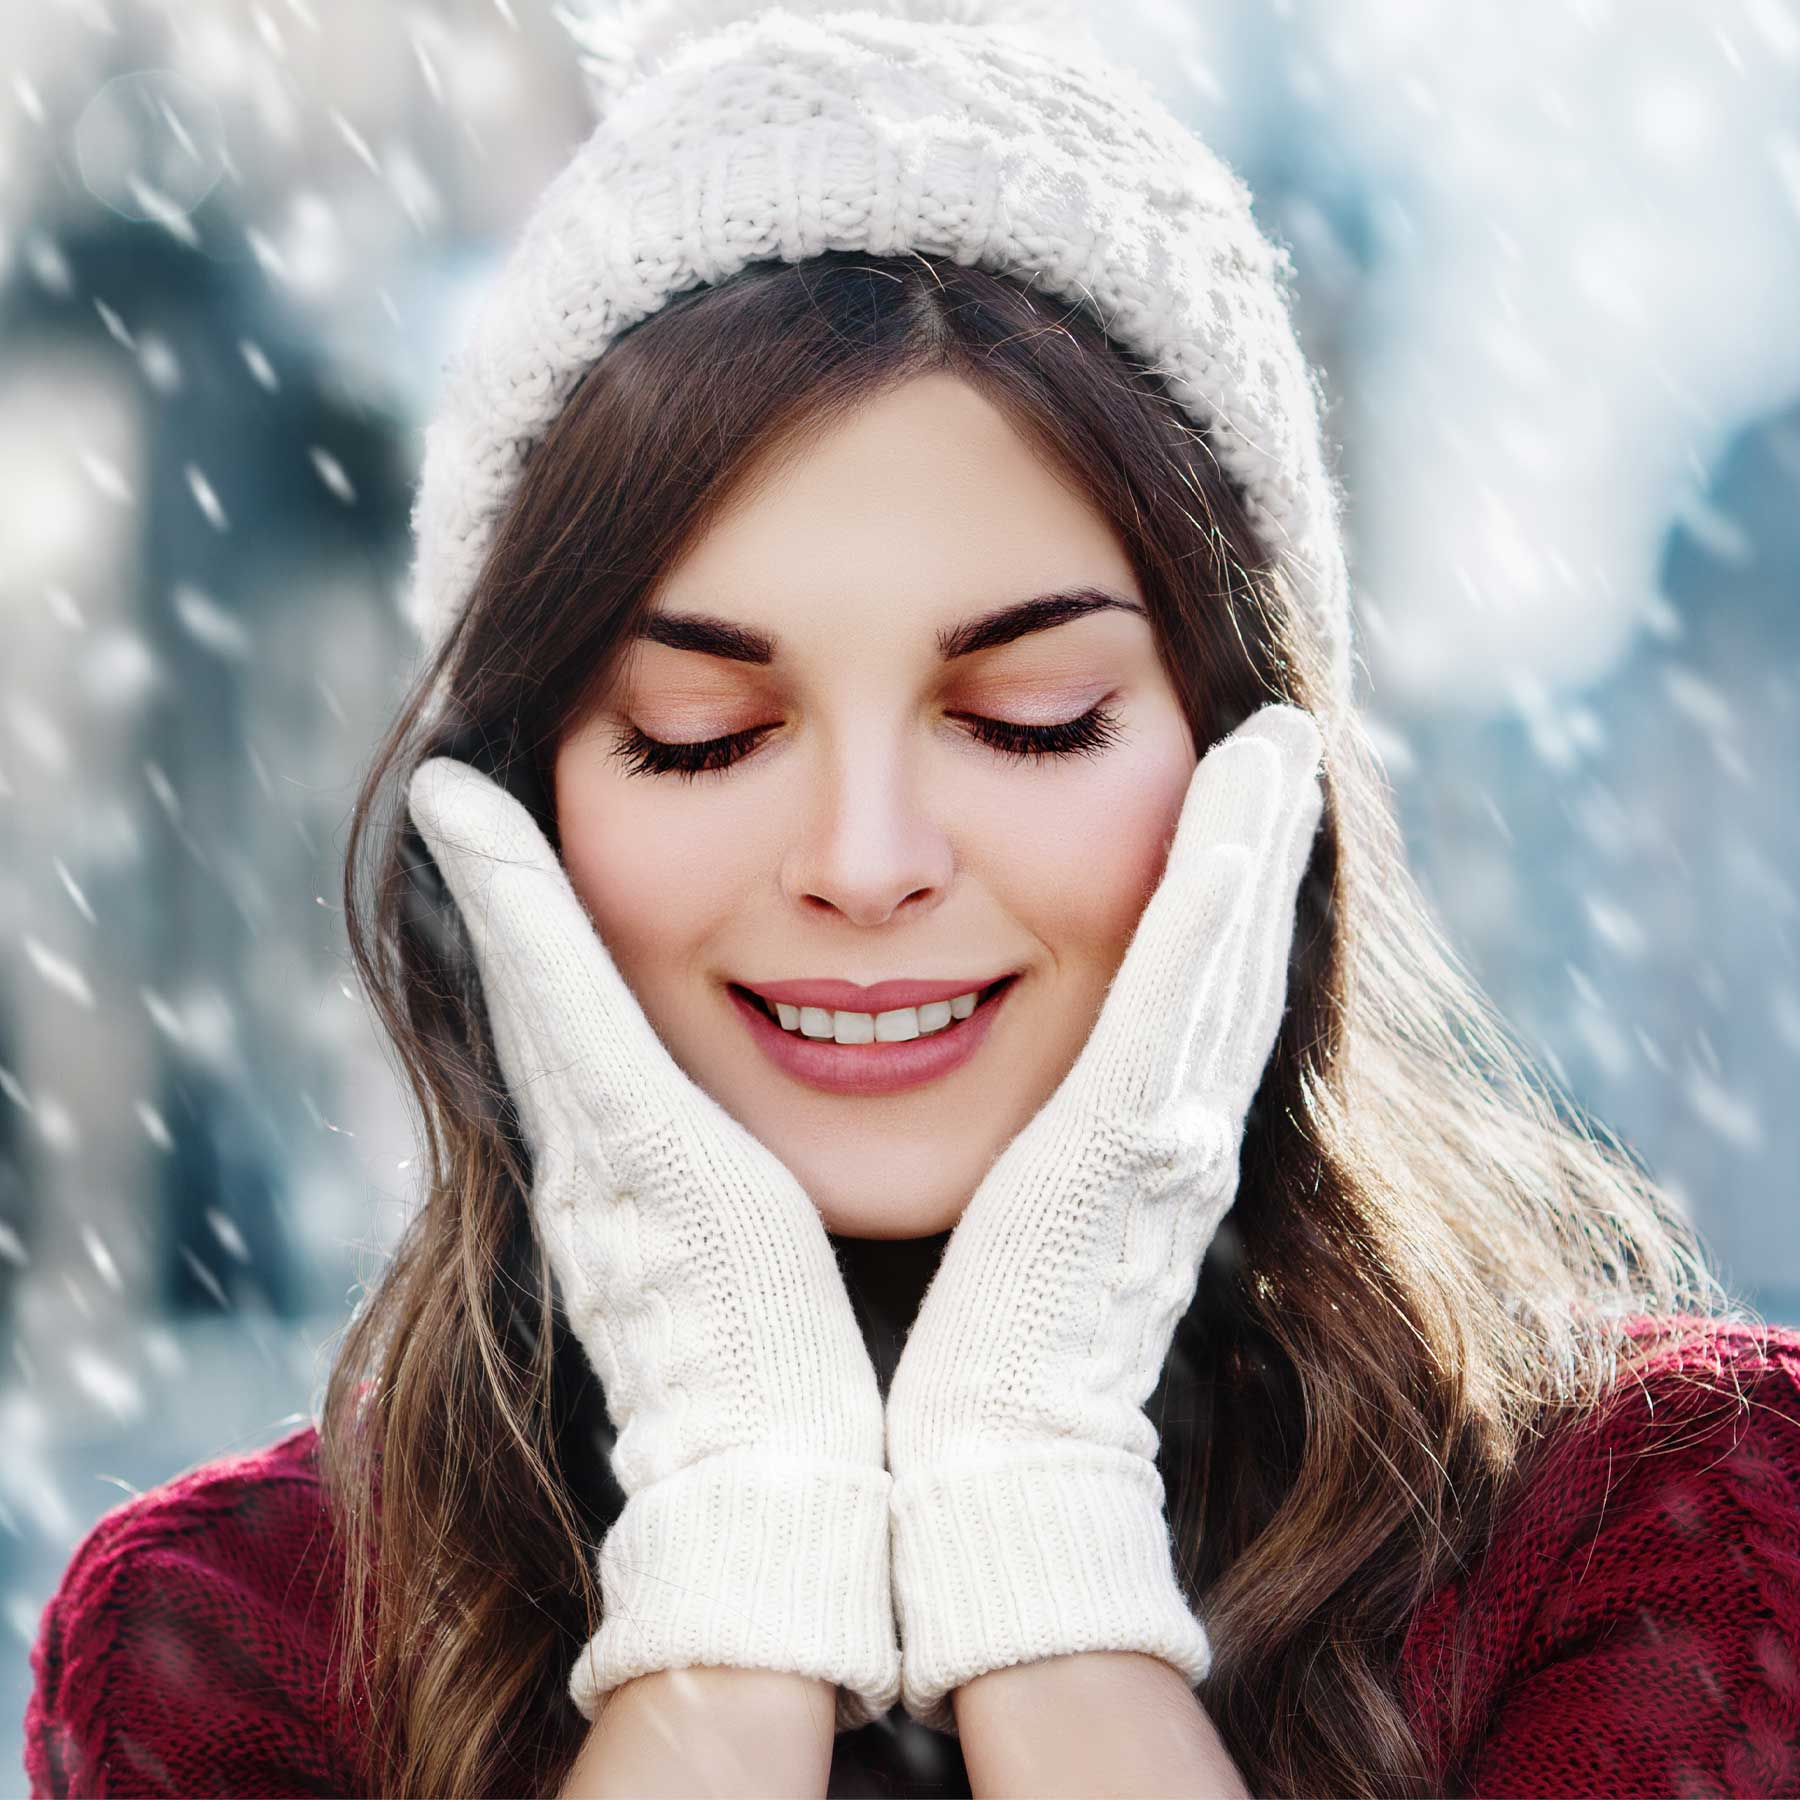 Wholesale Winter Hats and Gloves